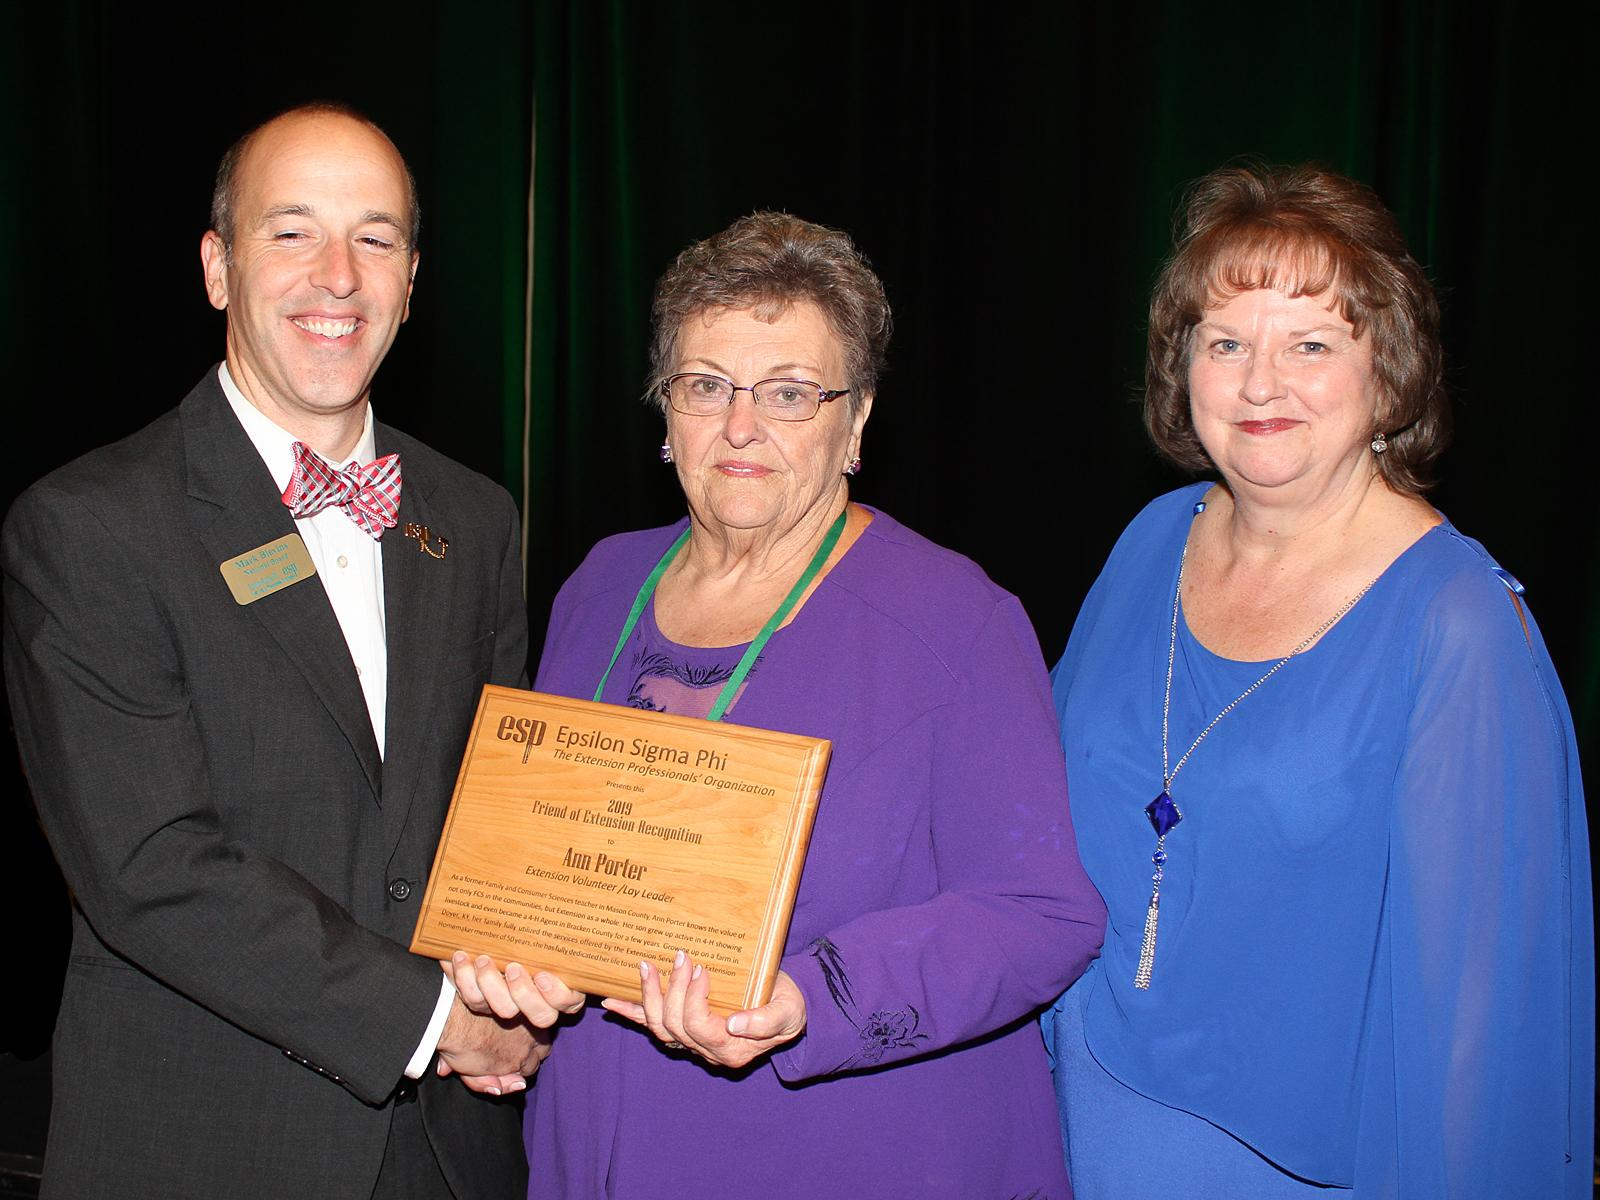 Ann Porter, center, accepts the 2019 Friend of Extension-Volunteer/Lay Leader Award from Mark Blevins, Epsilon Sigma Phi president. Also pictured is Nellie Buchanan, Morgan County family and consumer sciences extension agent. Photo by Billy Warrick.